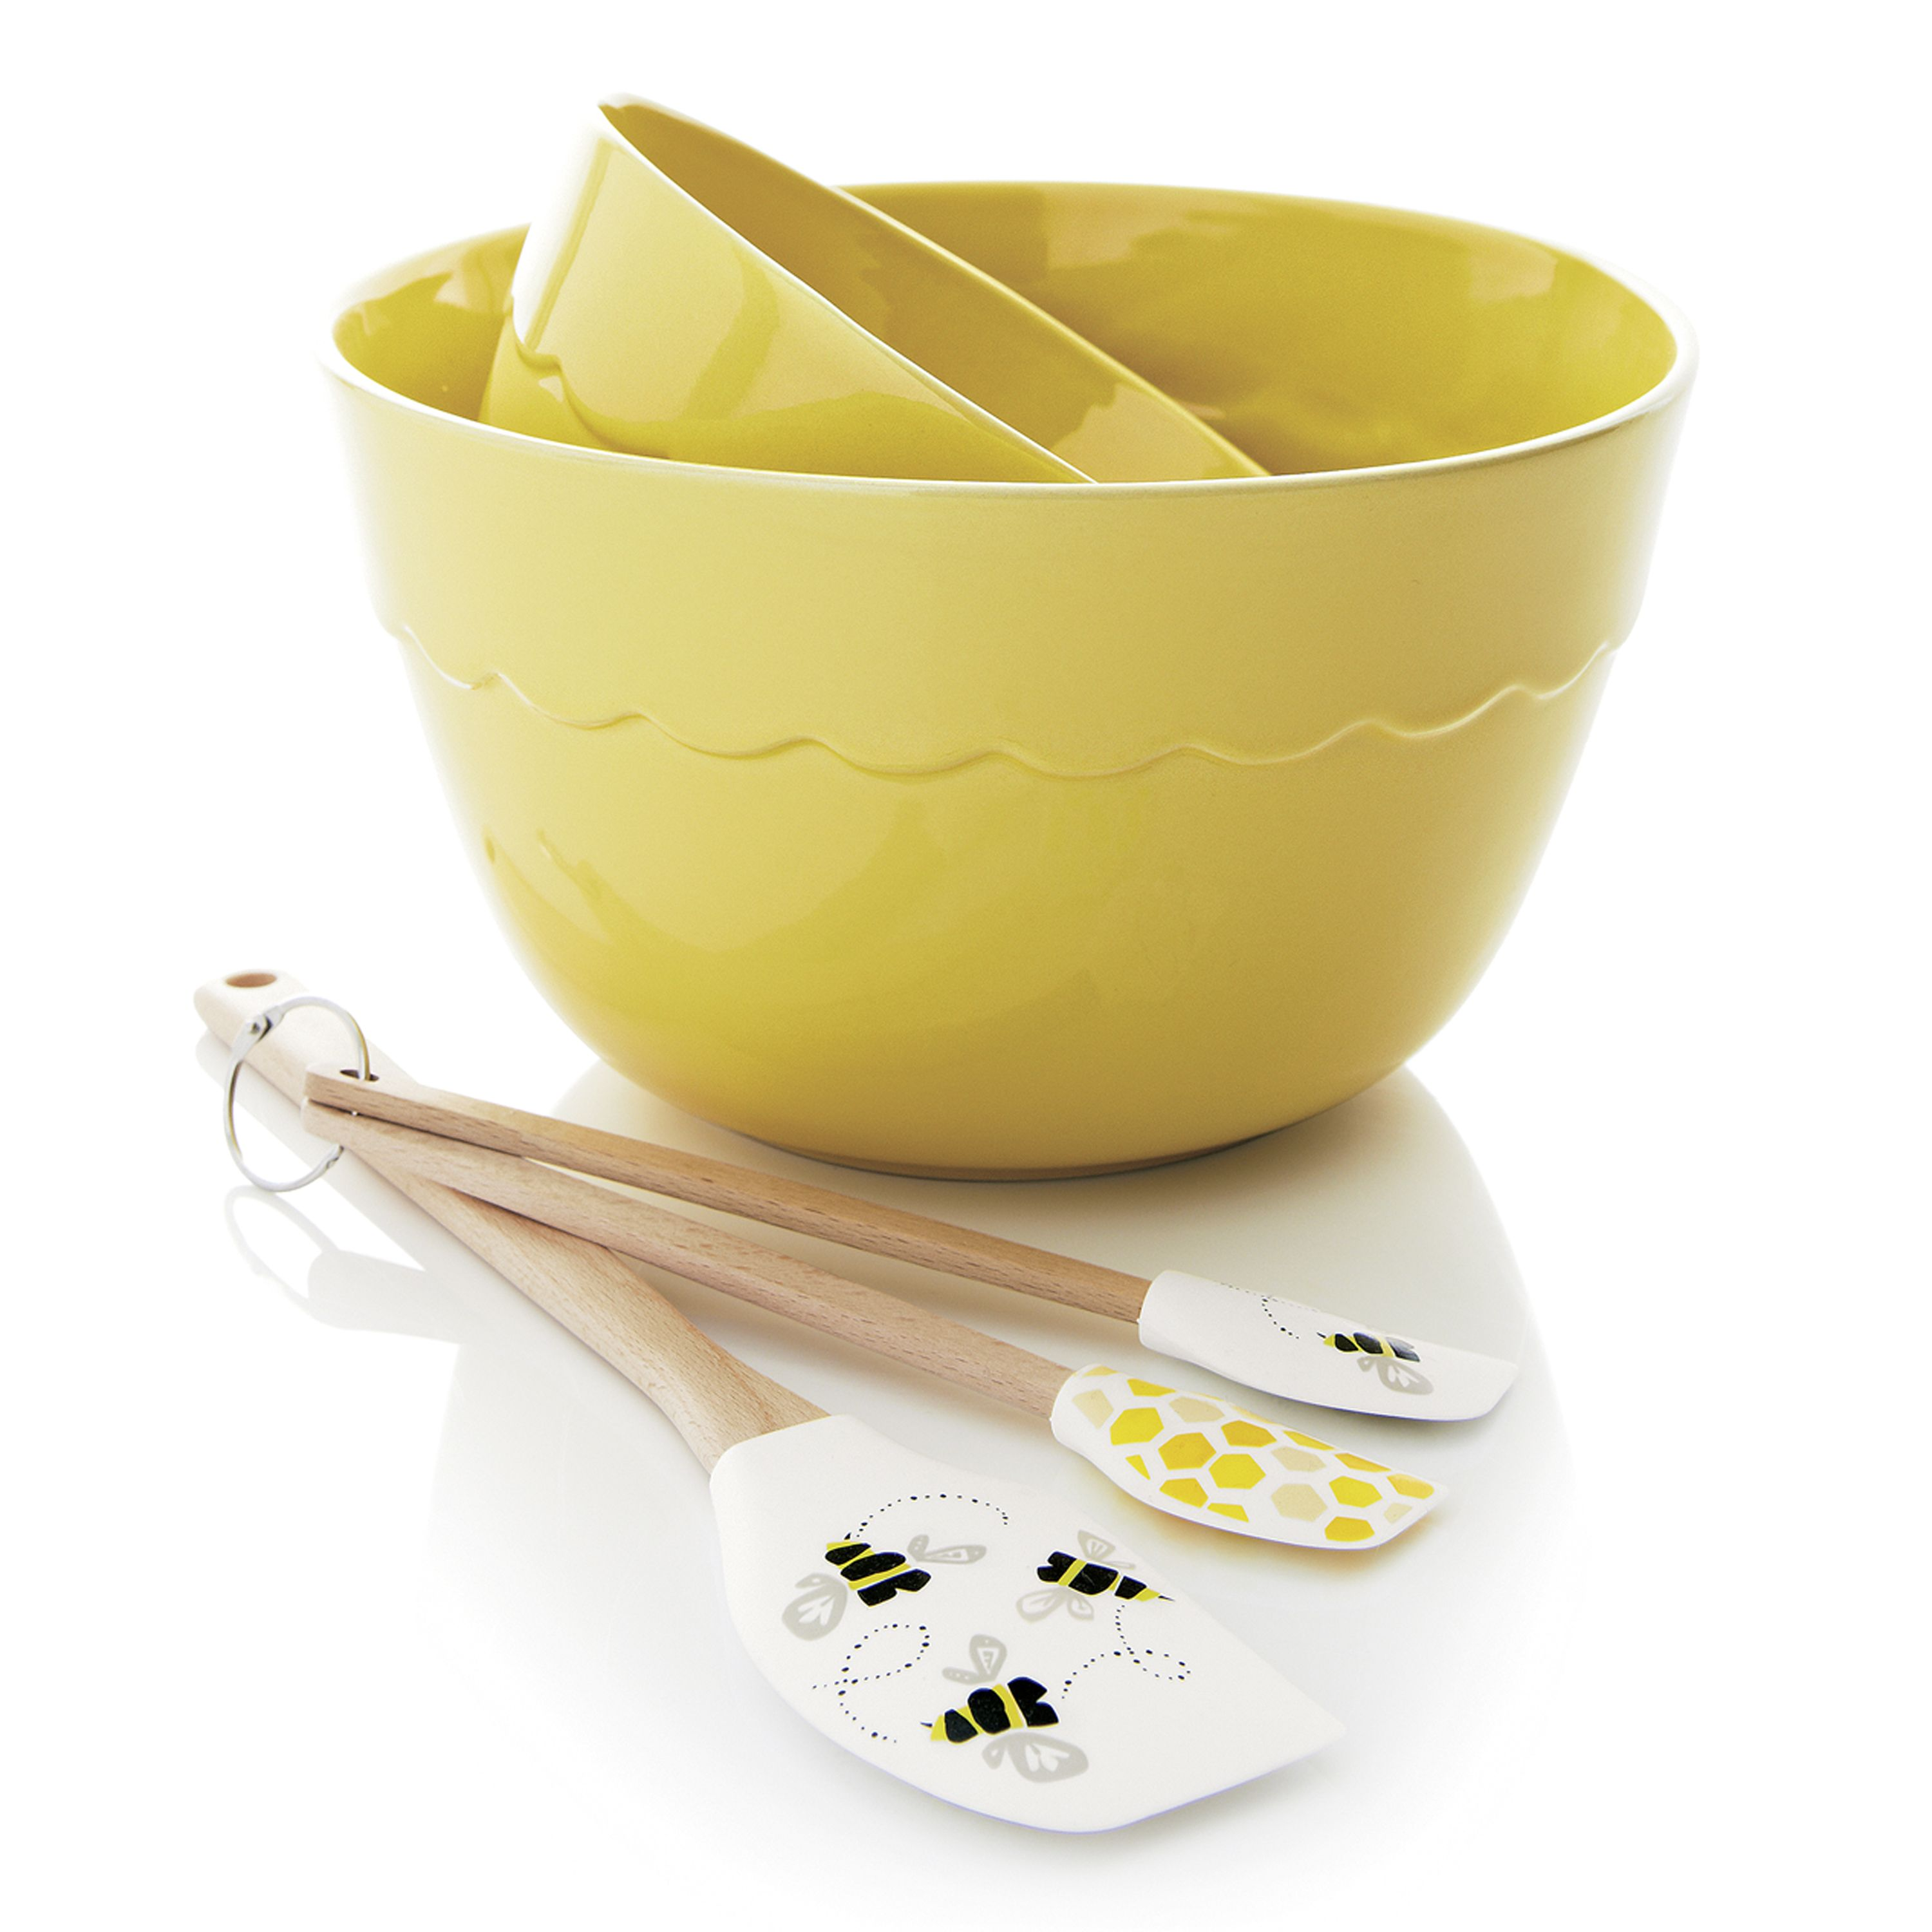 Online color mixer tool - Scalloped Details And A Sunny Yellow Color Brighten Up This Pair Of Versatile Bowls Deep